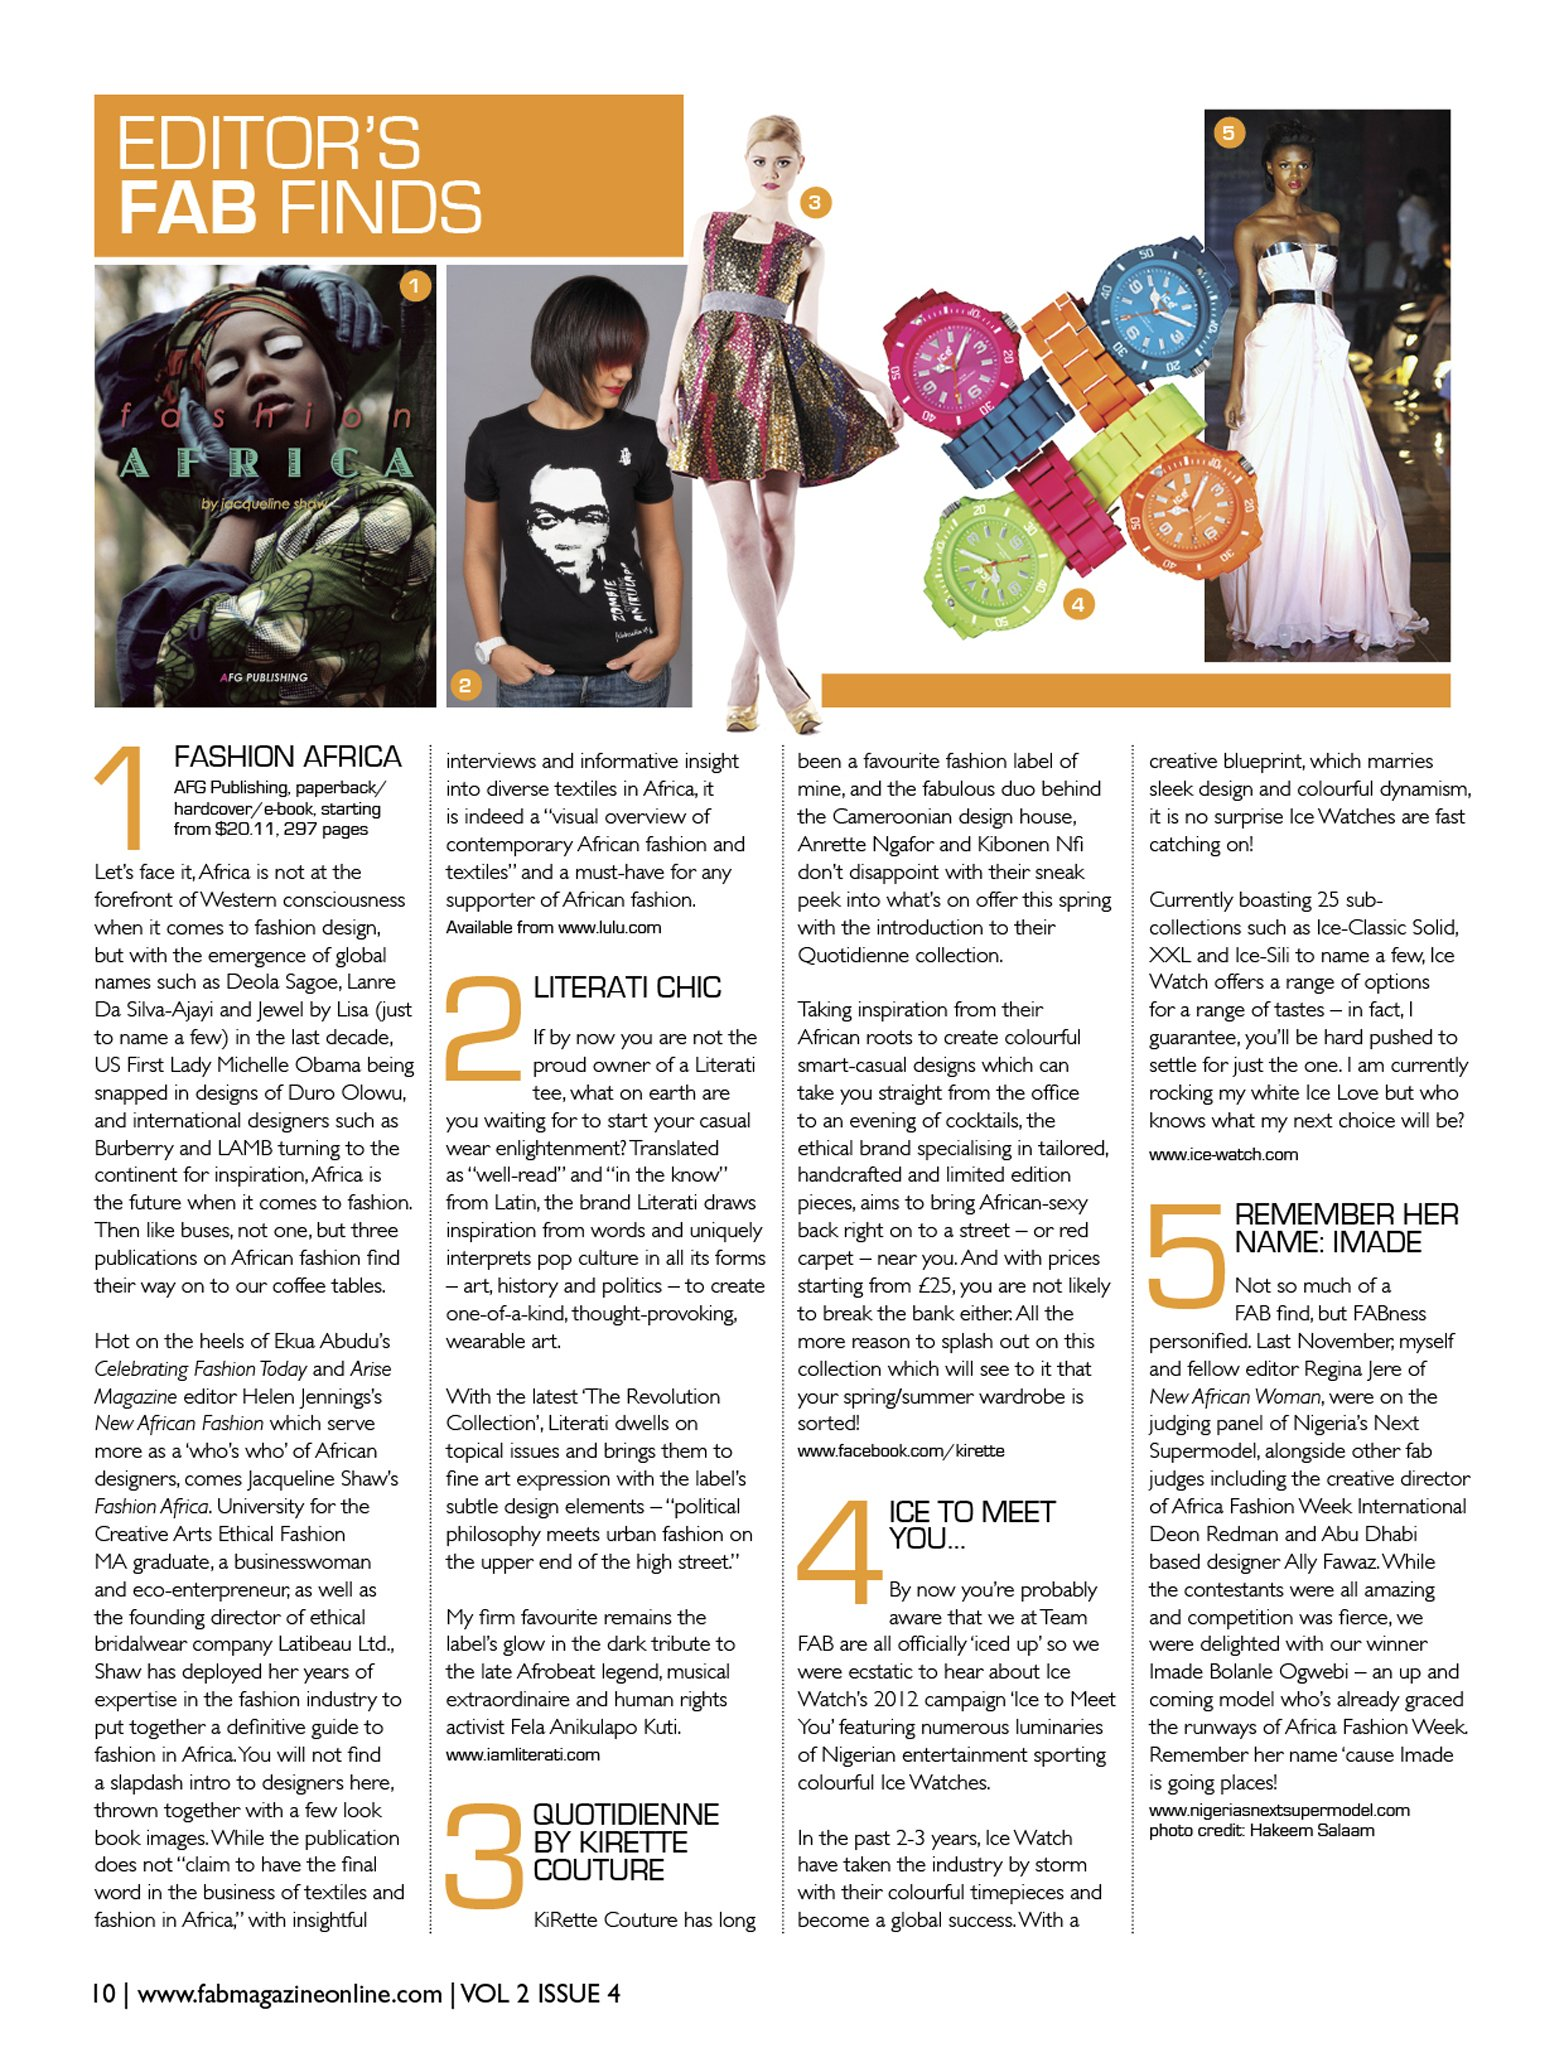 Review of Fashion Africa in Issue 8 of FAB Magazine